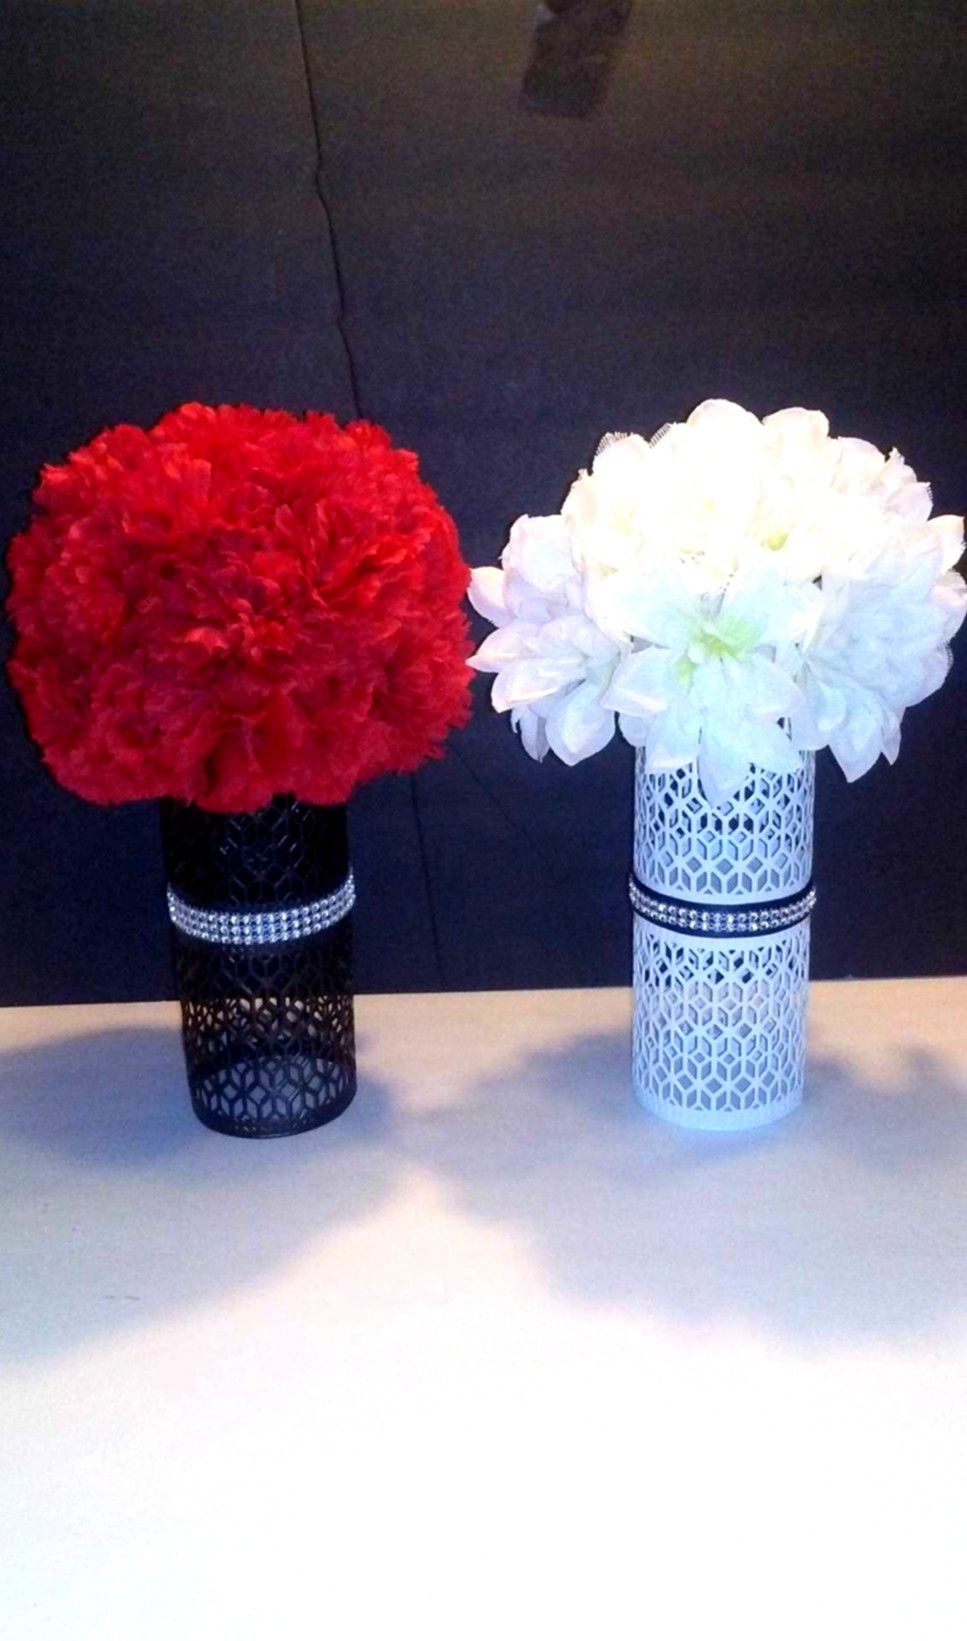 blue glass vases cheap of diy dollar tree glam vases diy floral home decor one dollar pertaining to diy dollar tree glam vases diy floral home decor one dollar pictures